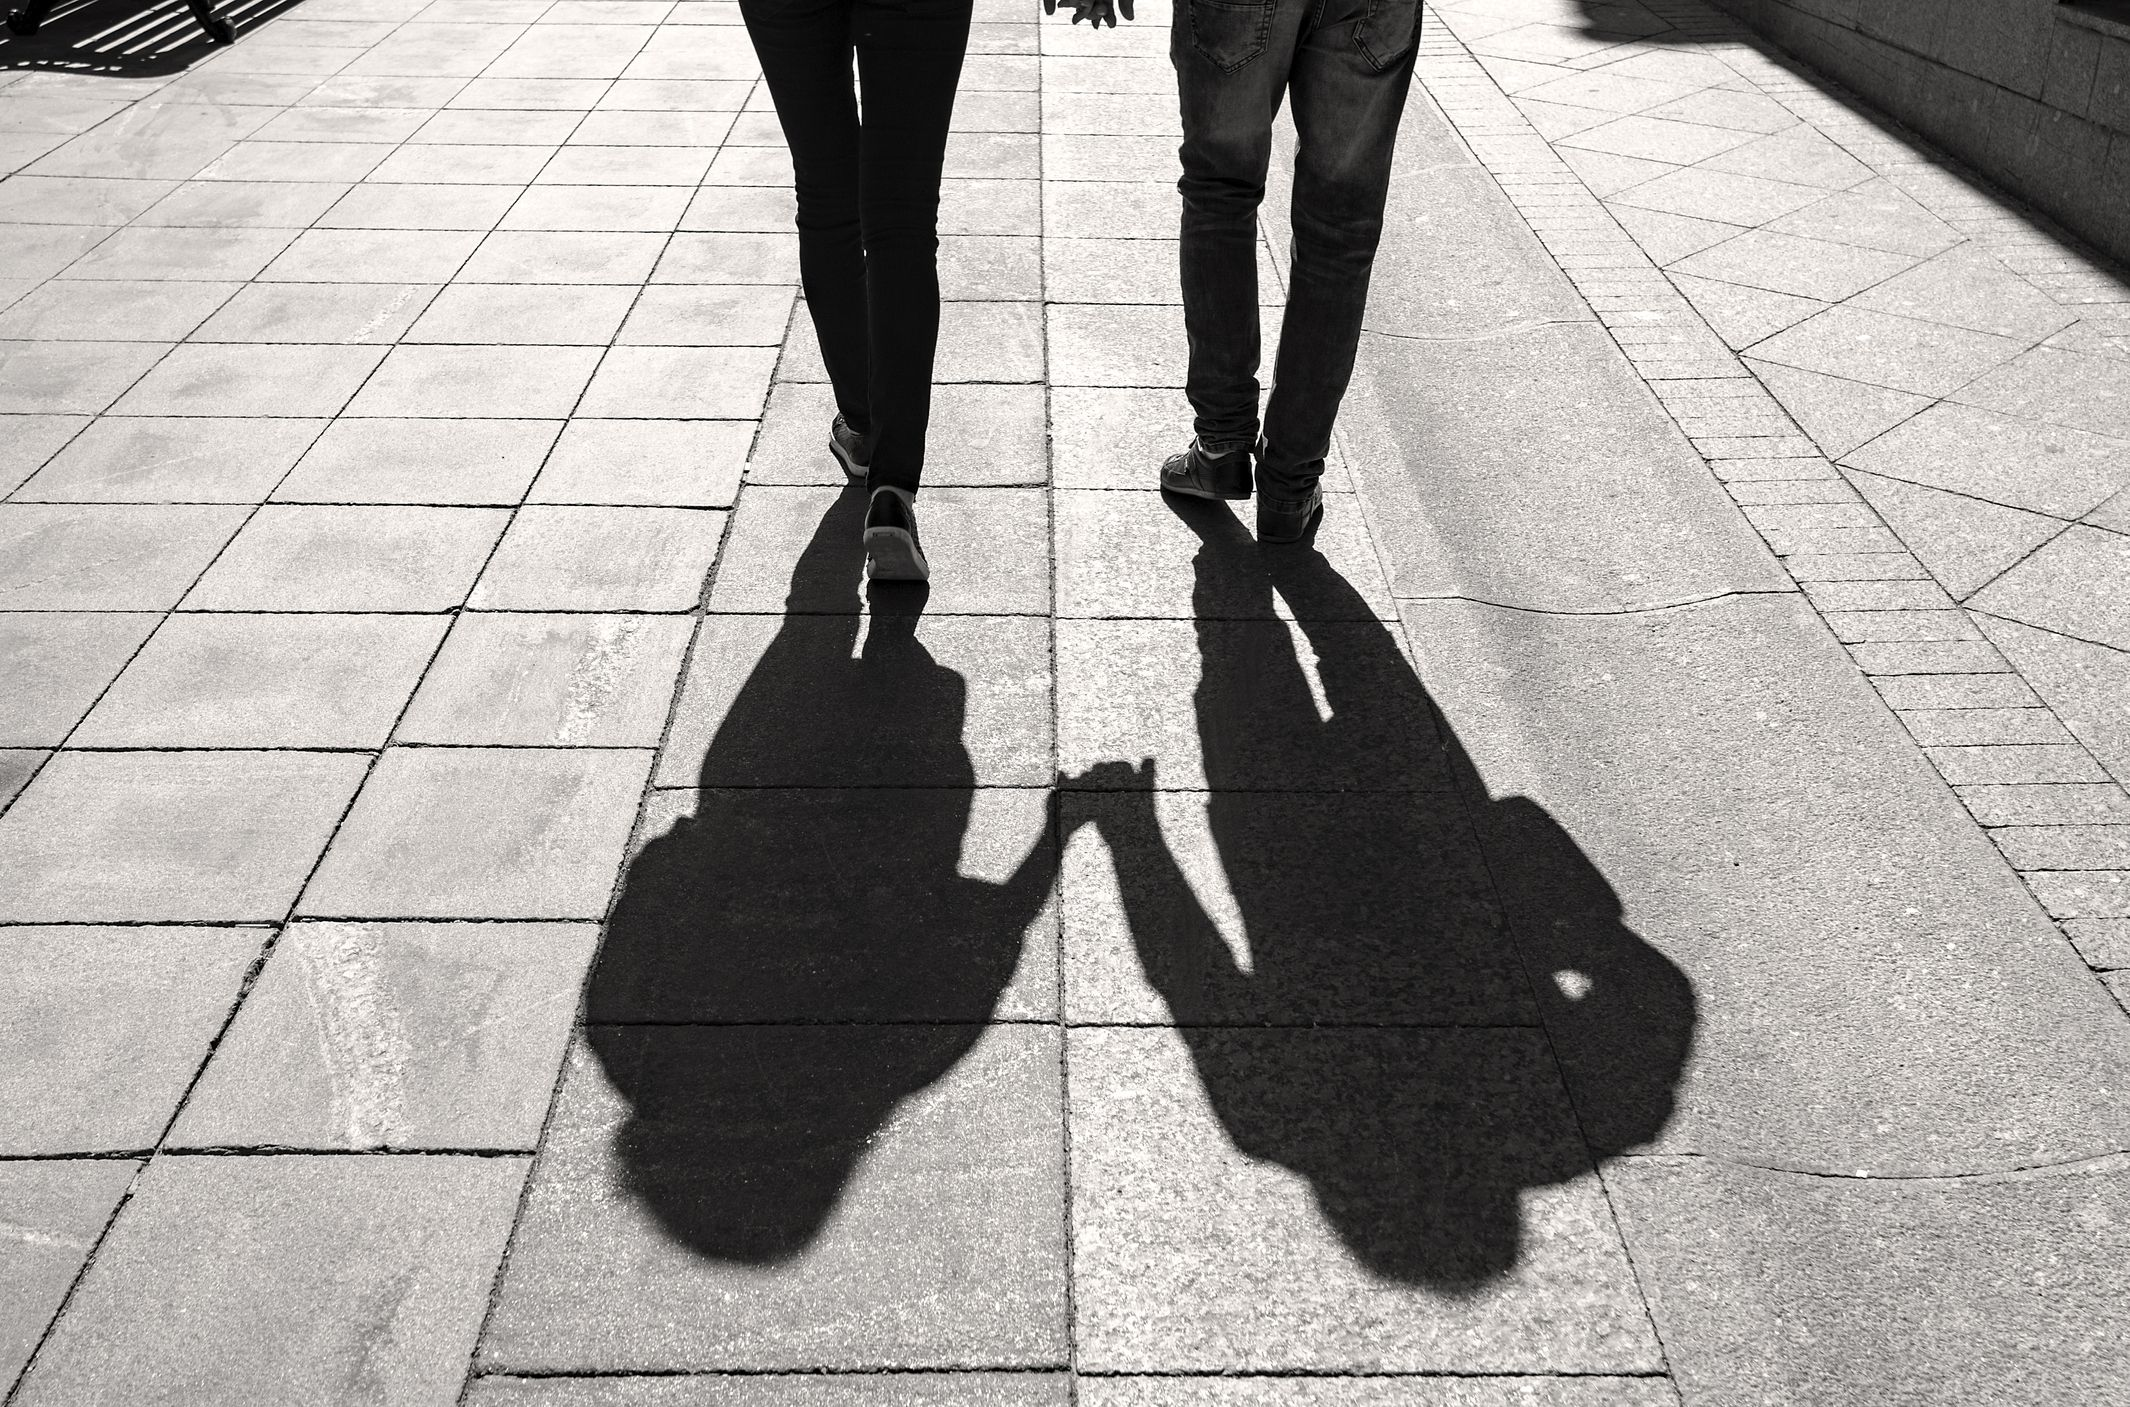 Sometimes the best way to stay together is to remain apart